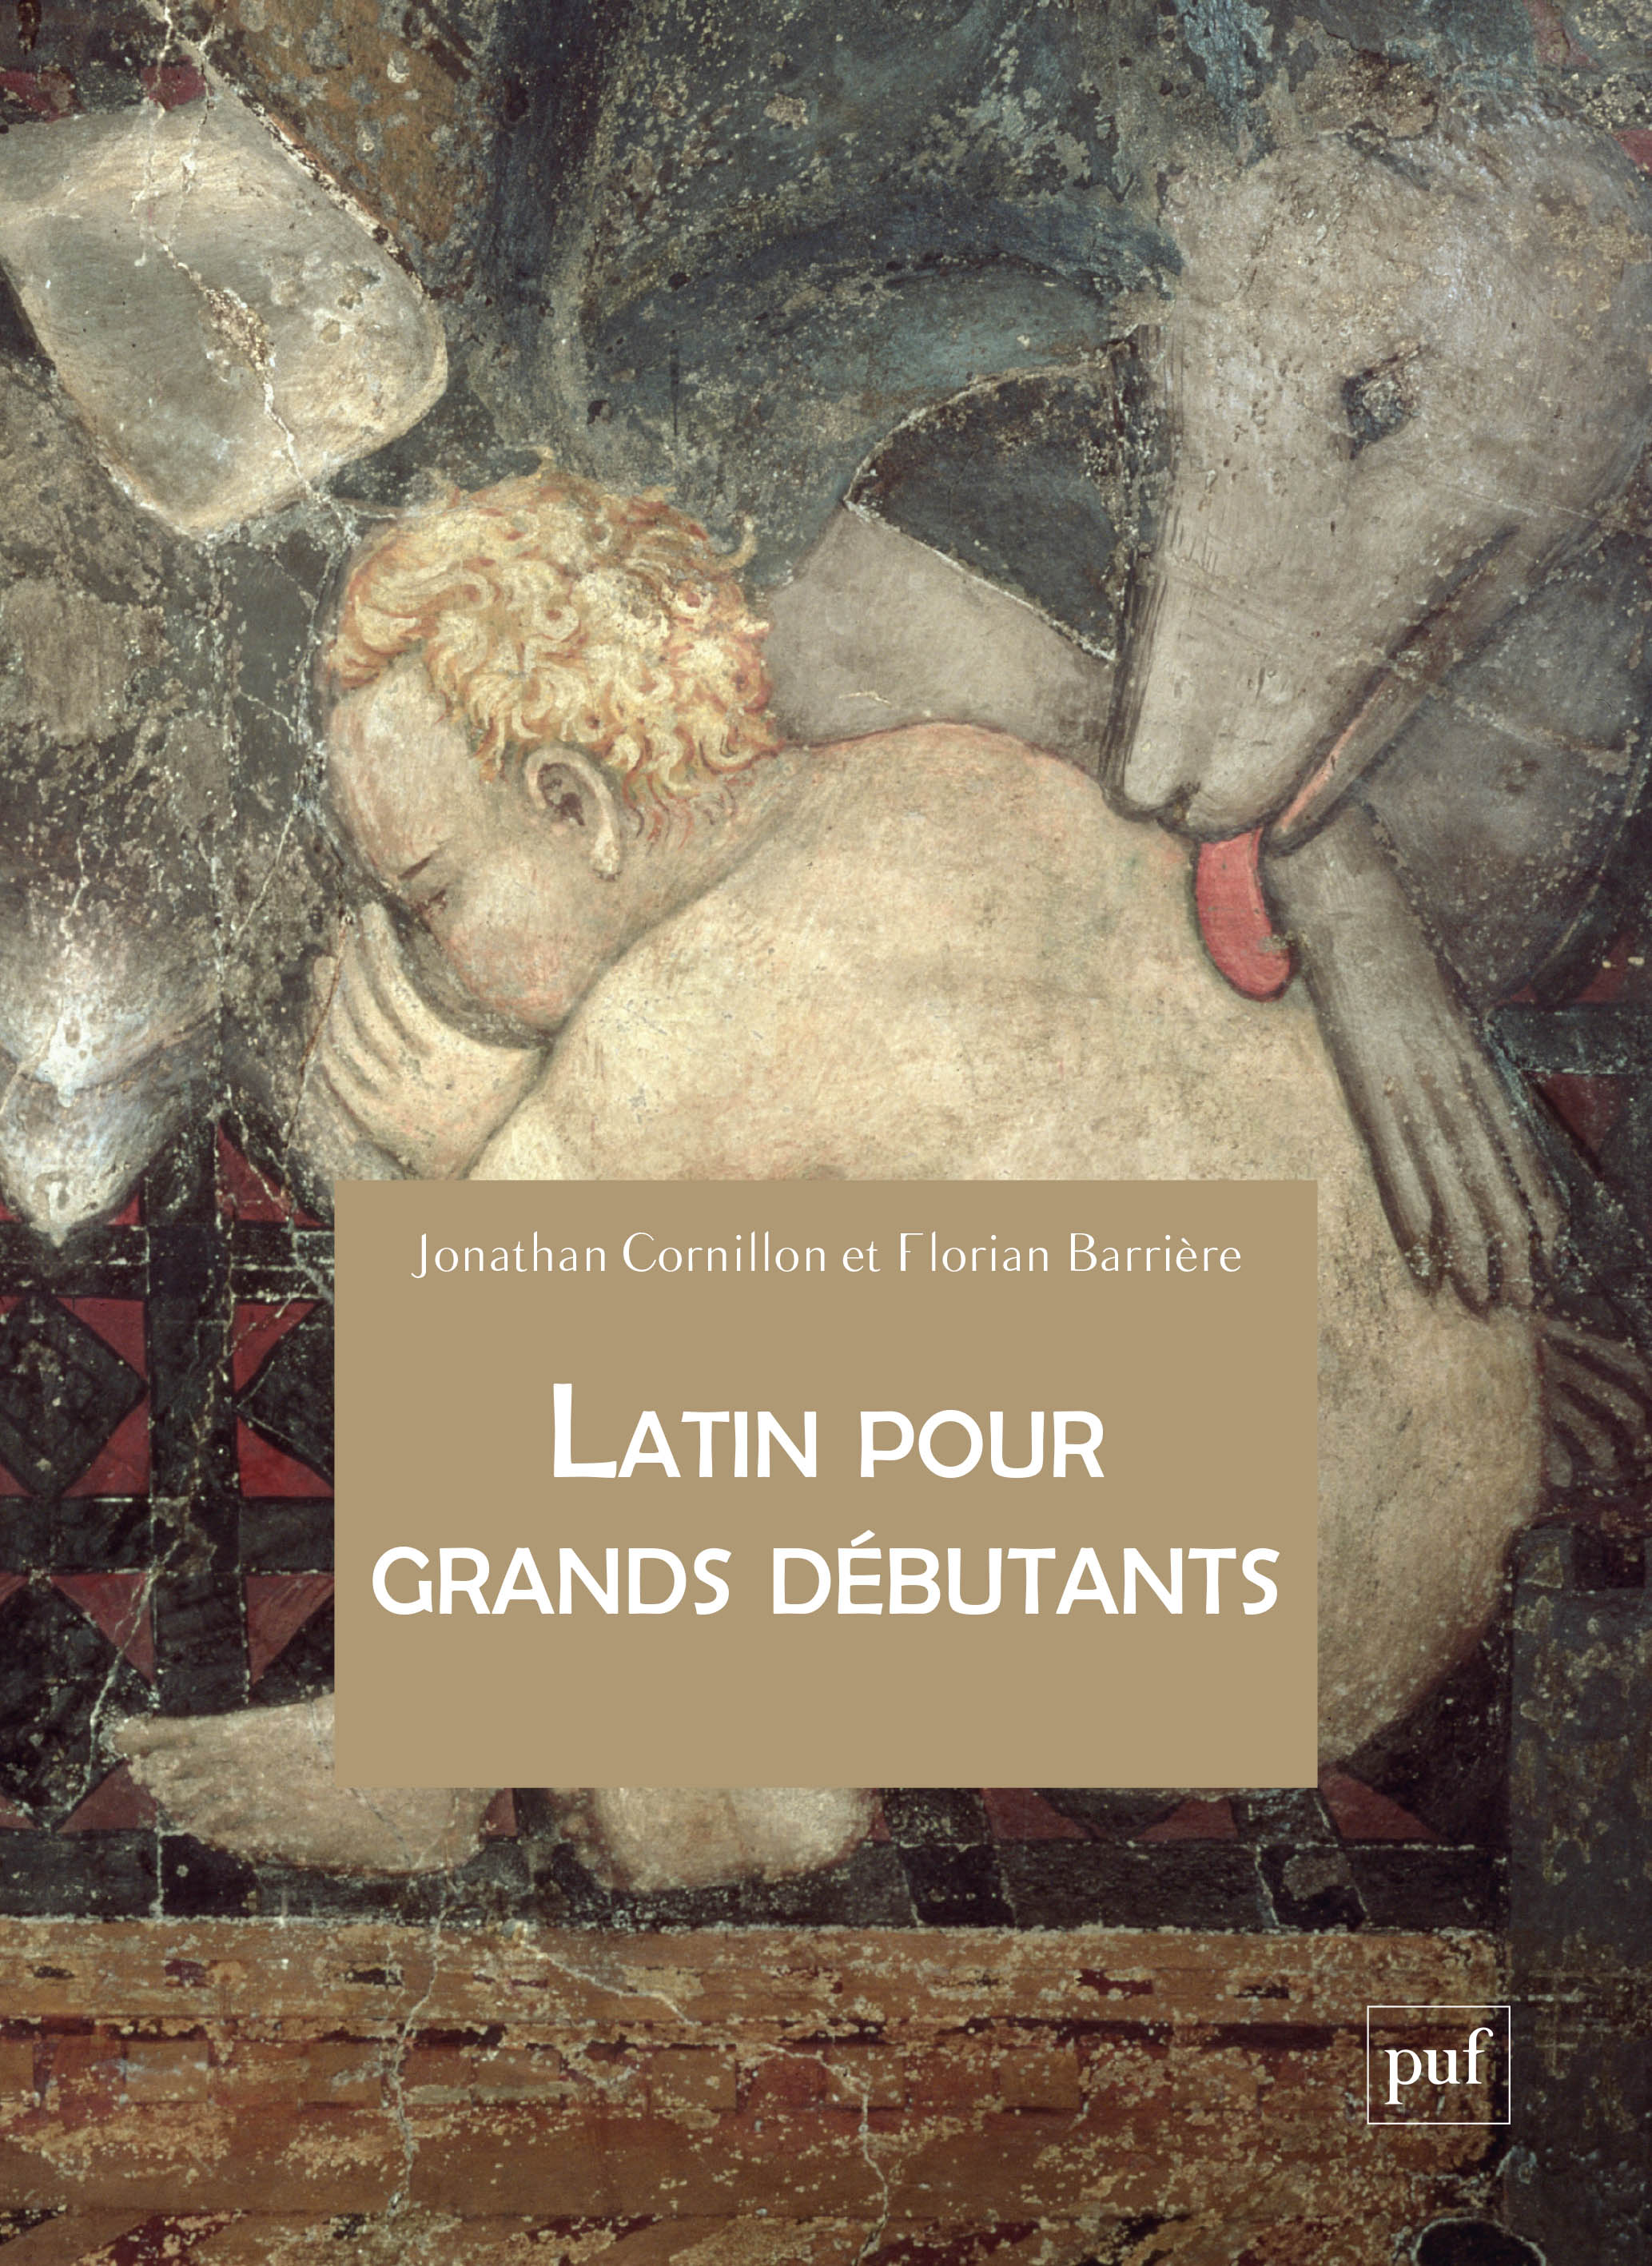 latin_grands_debutants_9782130811008.jpg